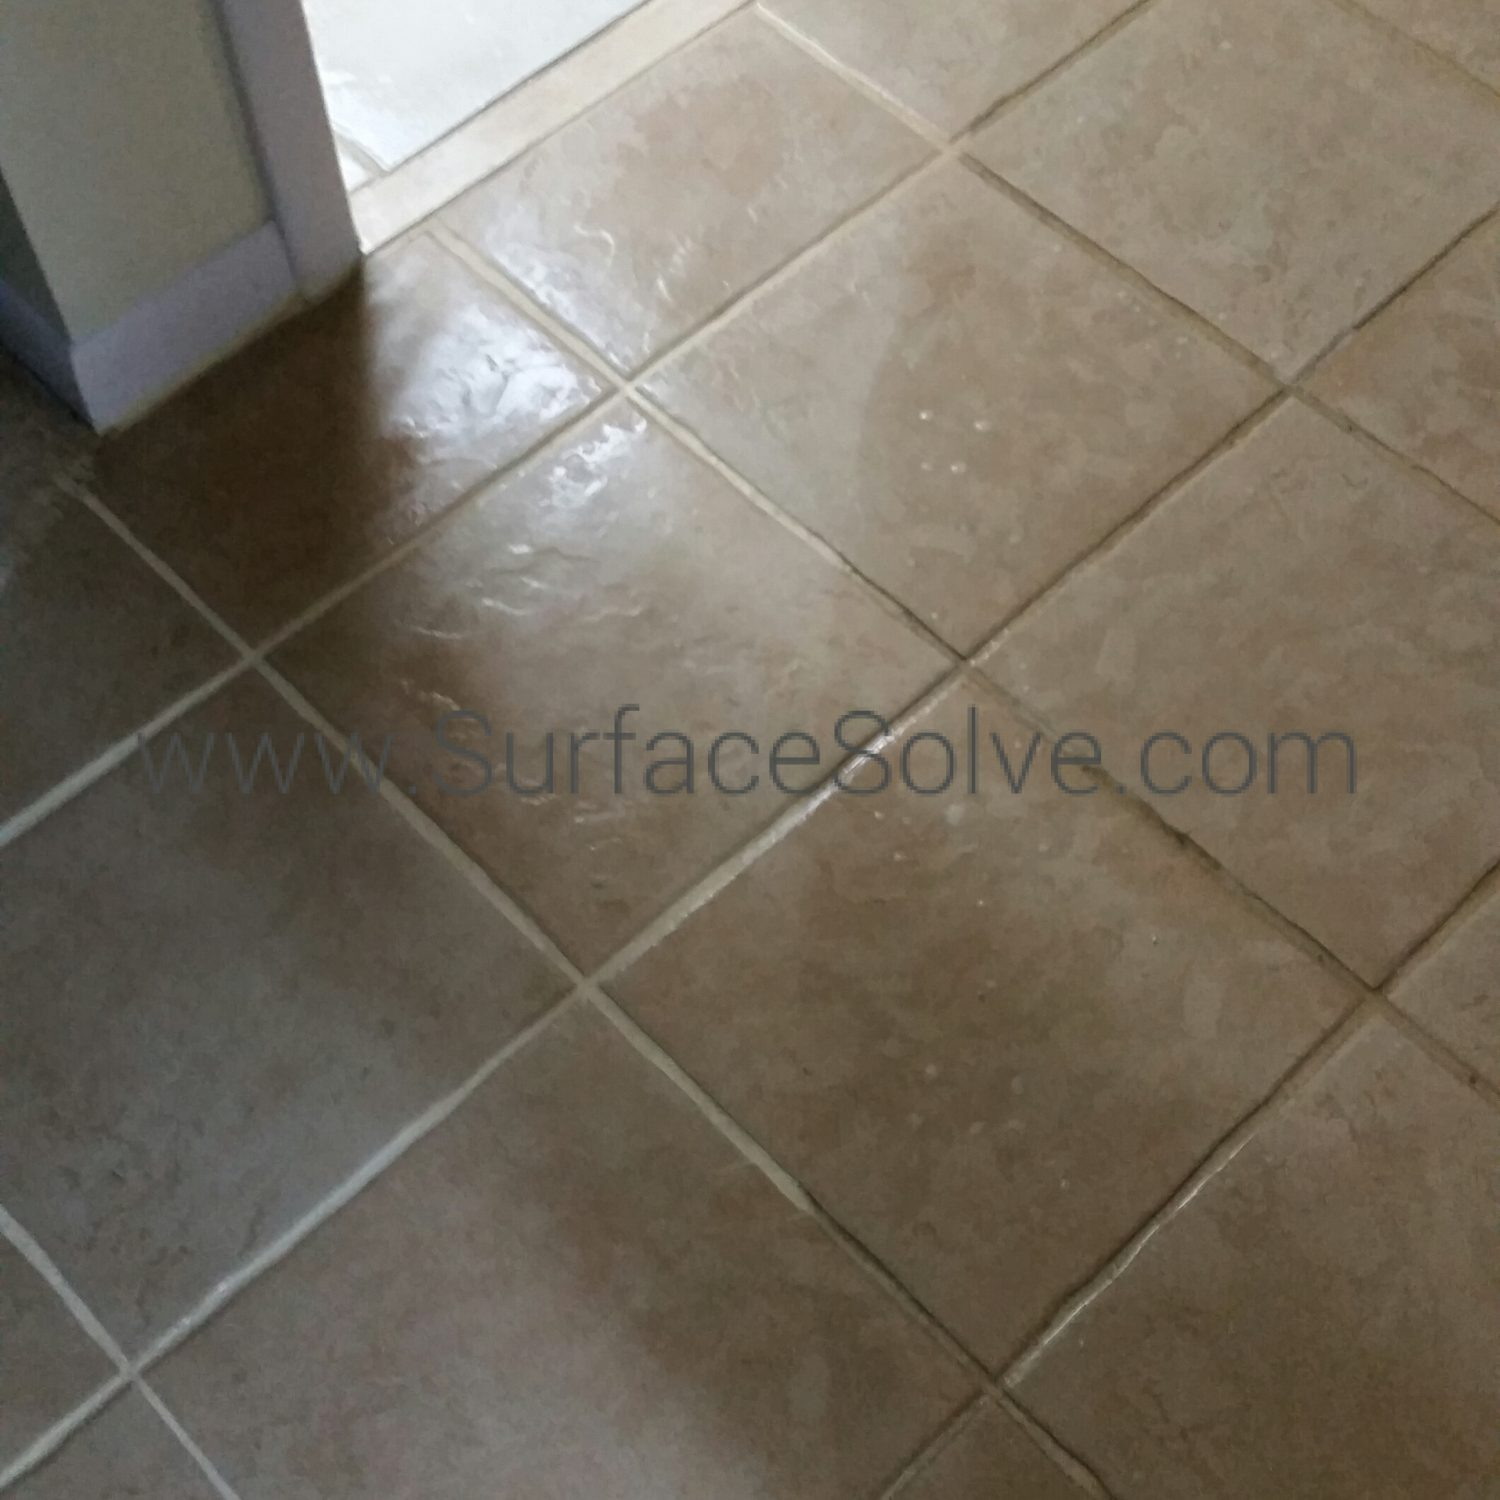 Tile cleaning Tampa SurfaceSolve